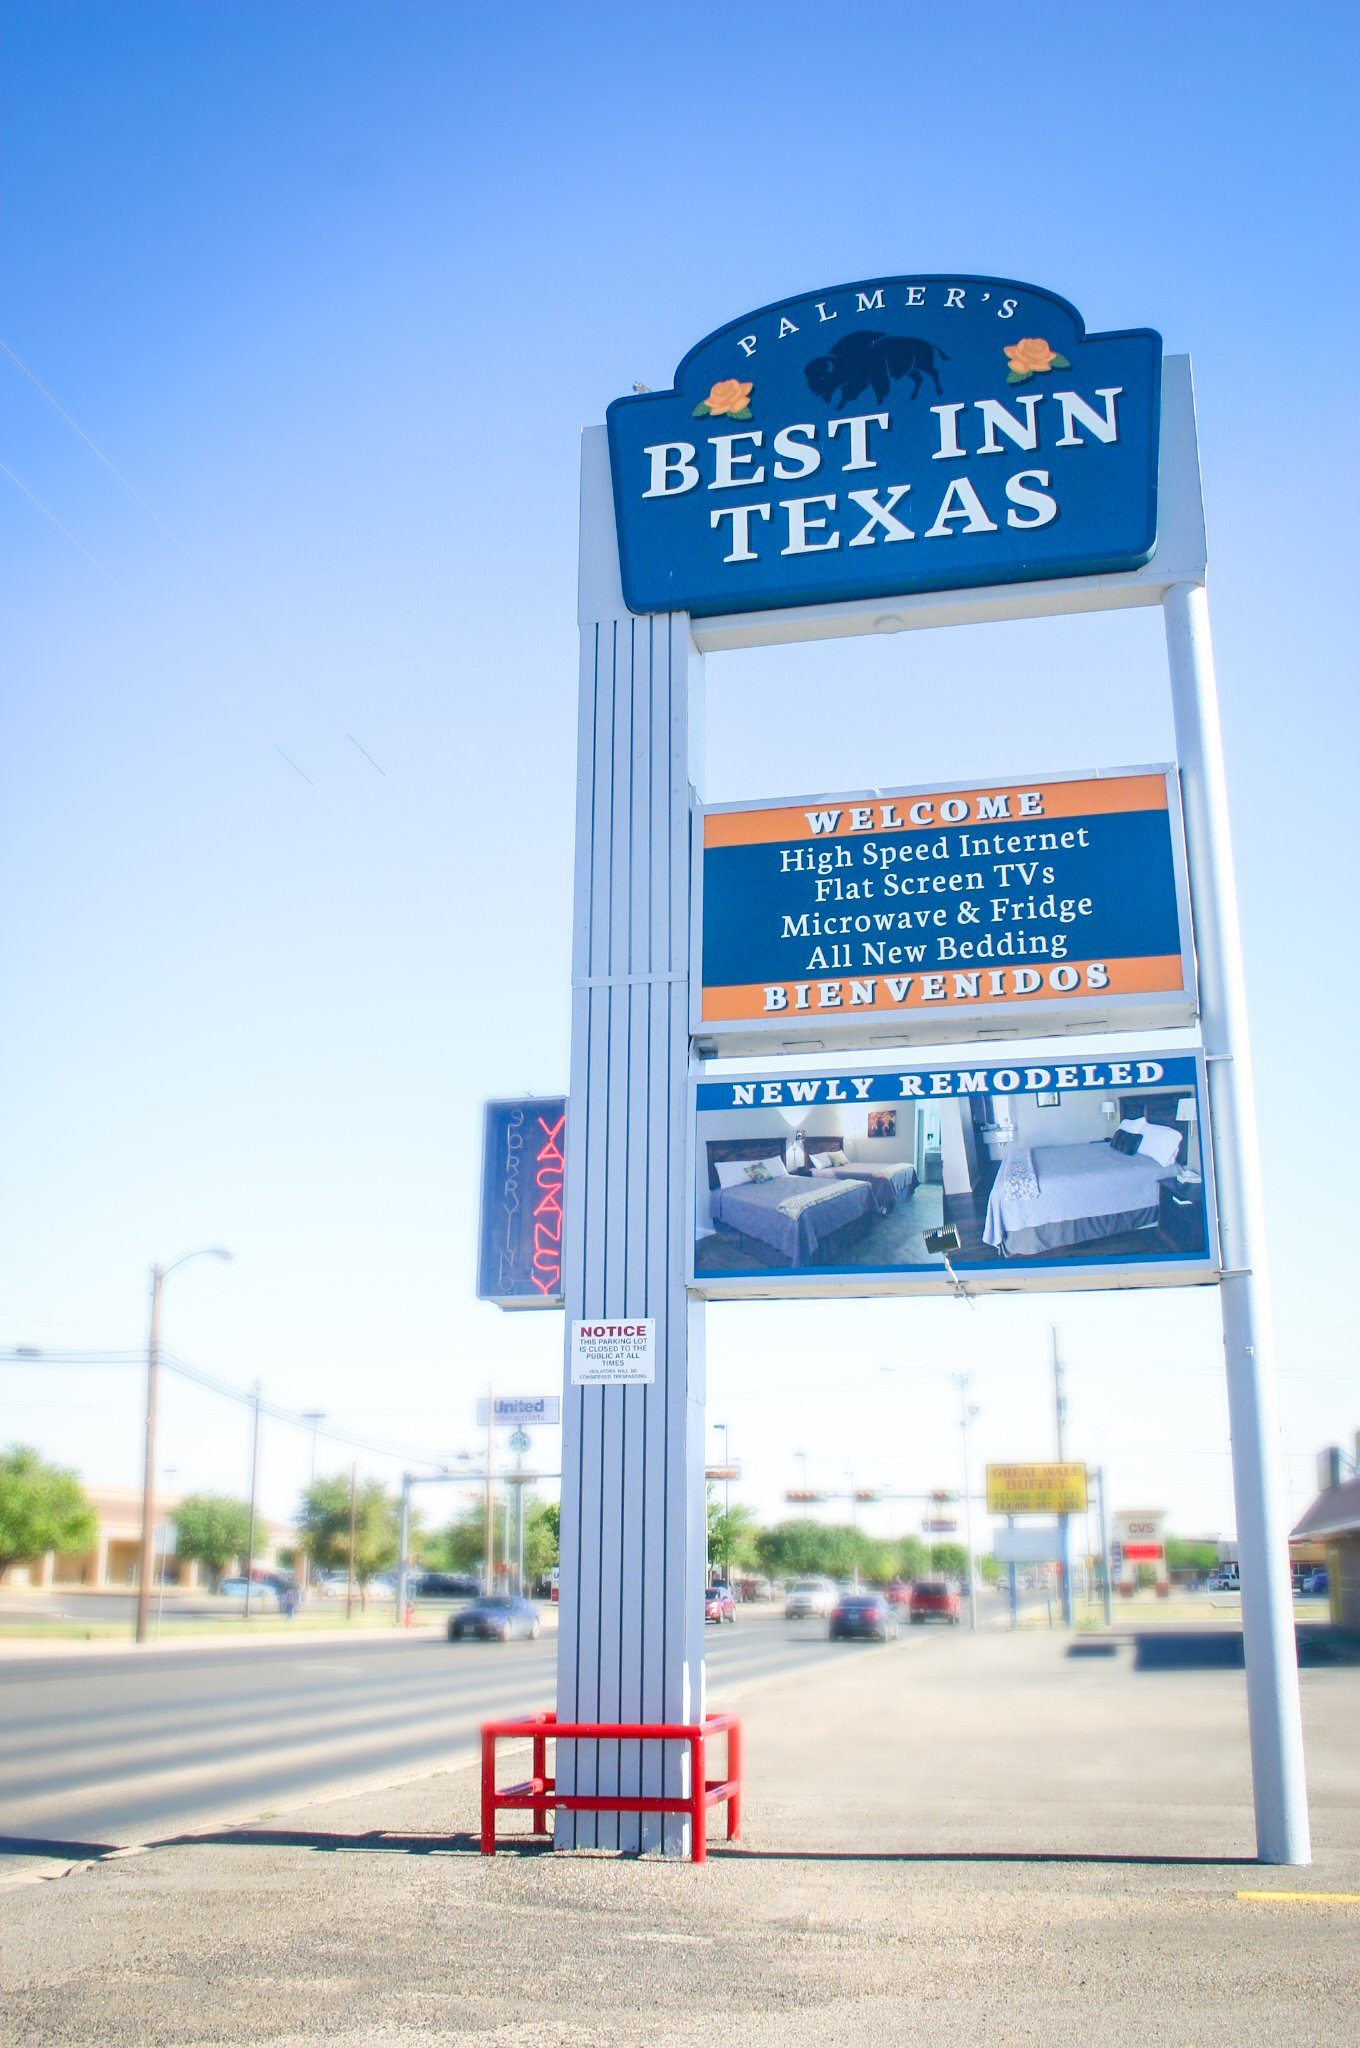 Best Inn Texas motel sign